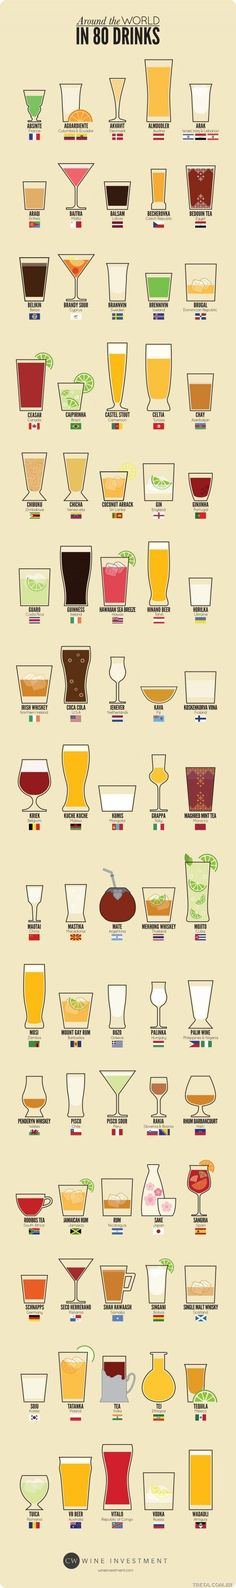 Around the world in 80 drinks kind of cool